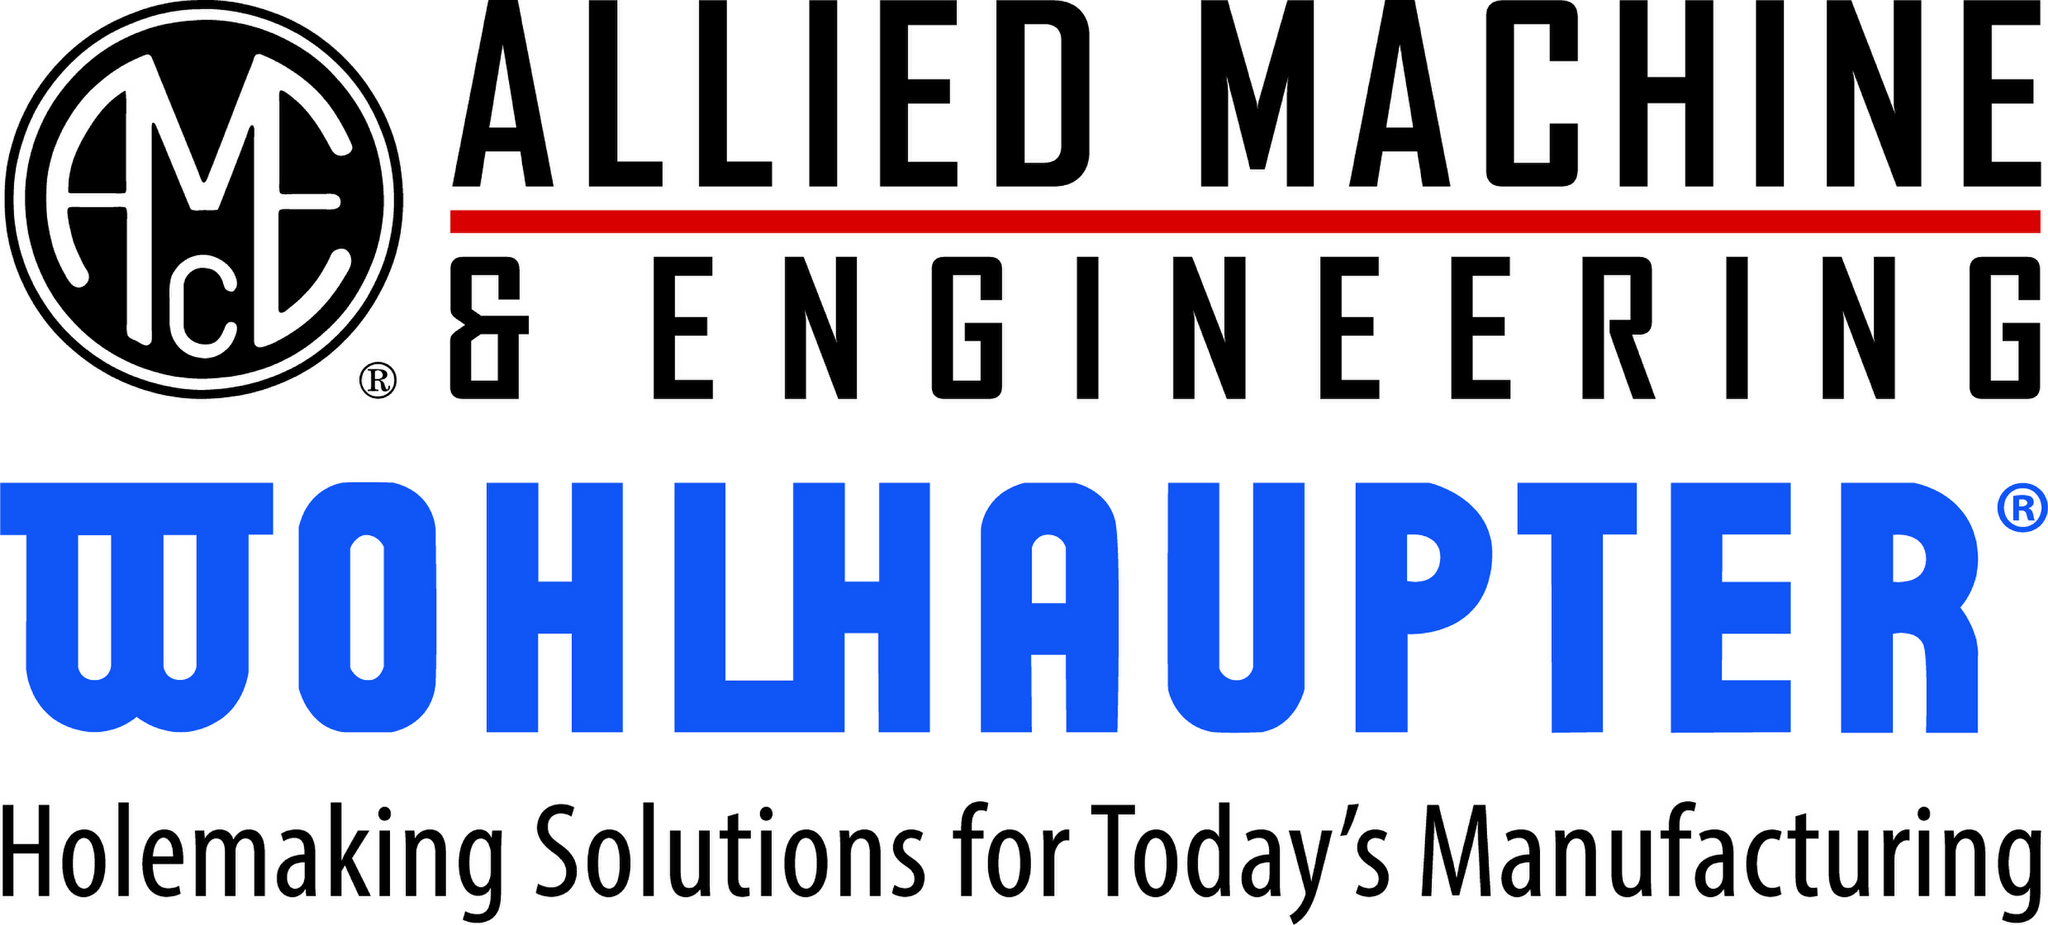 ALLIED MACHINE & ENGINEERING CO. (EUROPE) LTD.